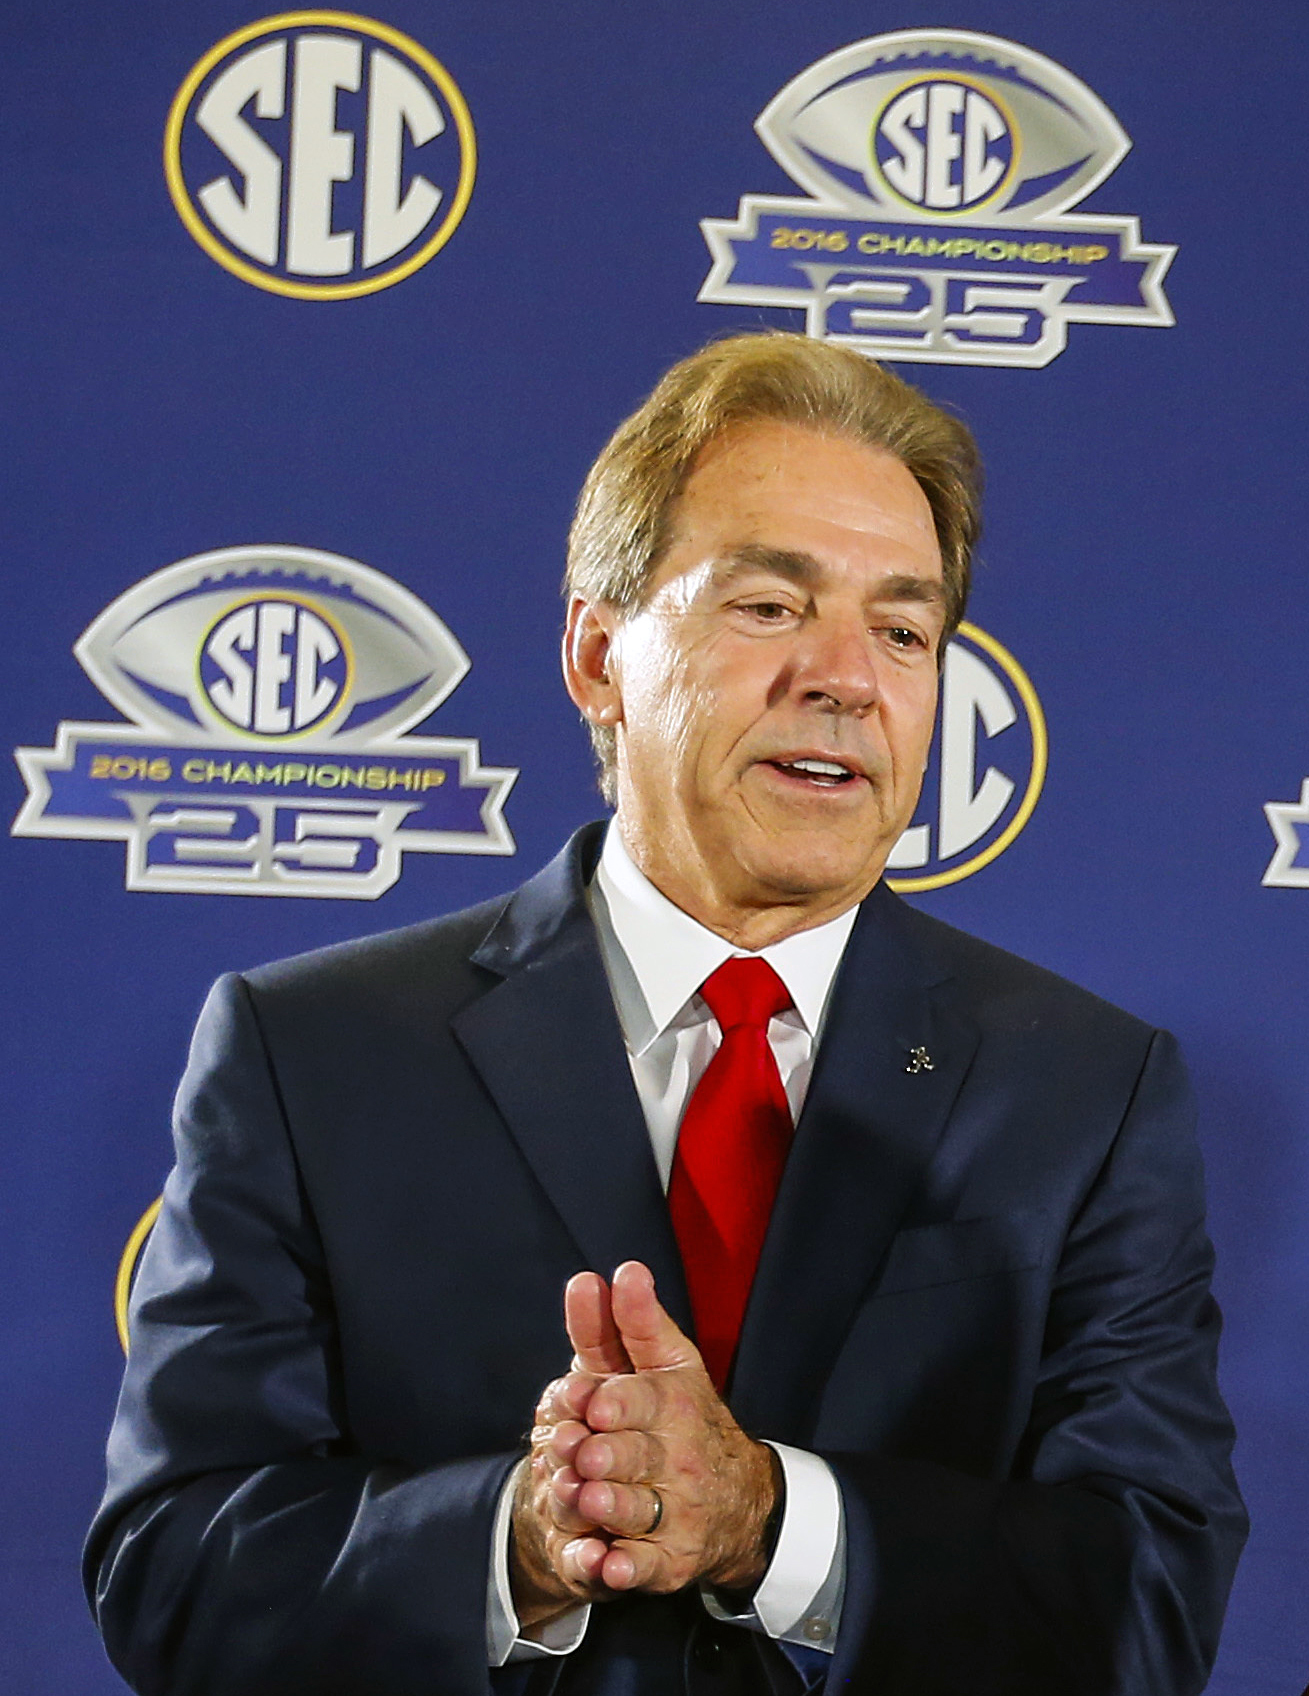 FILE - In this Dec. 2, 2016, file photo, Alabama head coach Nick Saban speaks during a press conference ahead of the Southeastern Conference Championship NCAA college football game against Florida, in Atlanta. Saban is the choice for coach of the year of